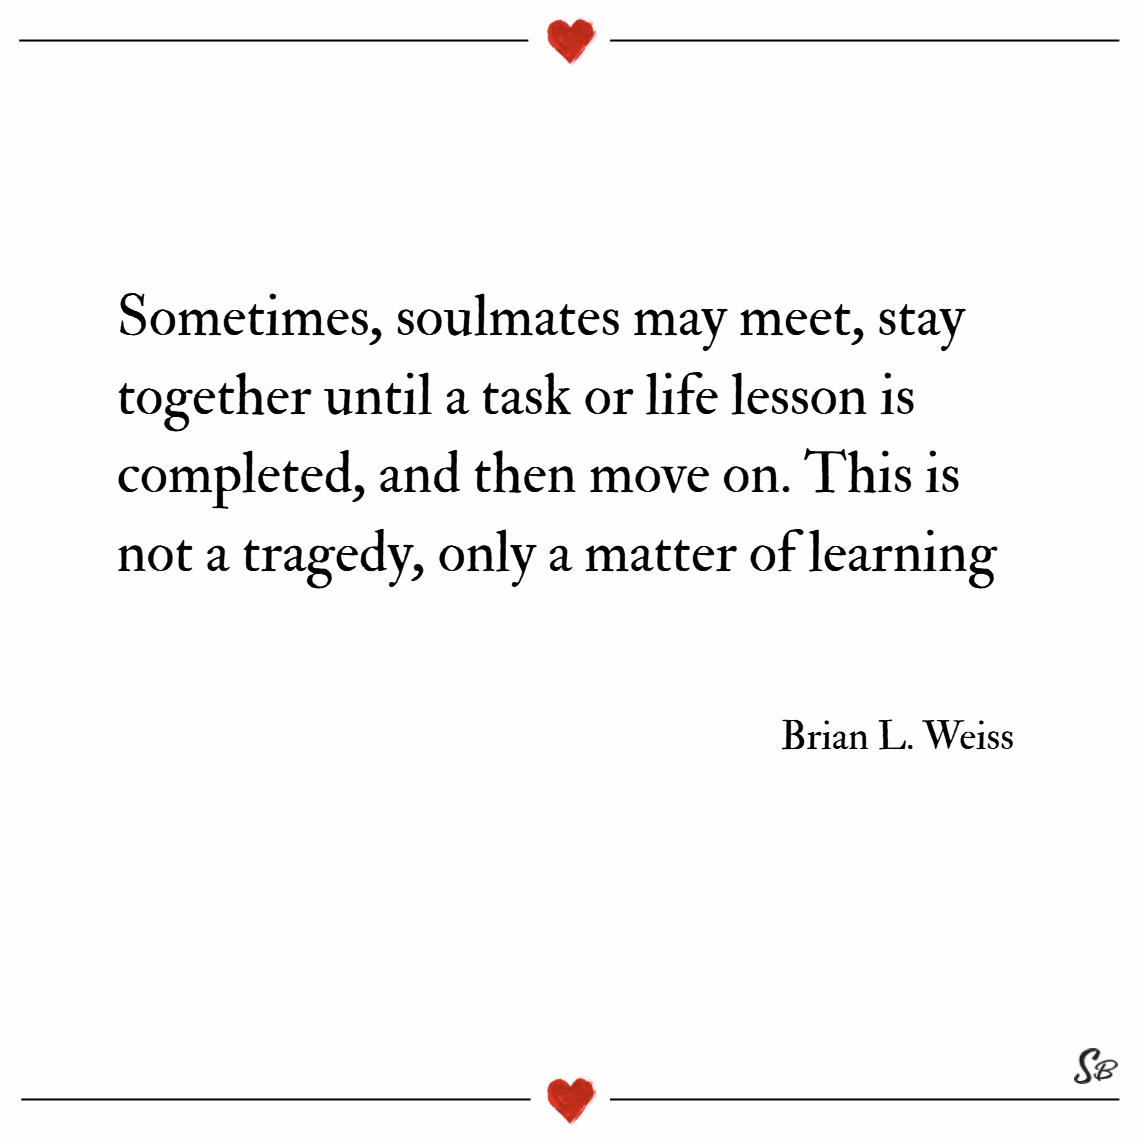 Sometimes, soulmates may meet, stay together until a task or life lesson is completed, and then move on. this is not a tragedy, only a matter of learning. – brian l. weiss